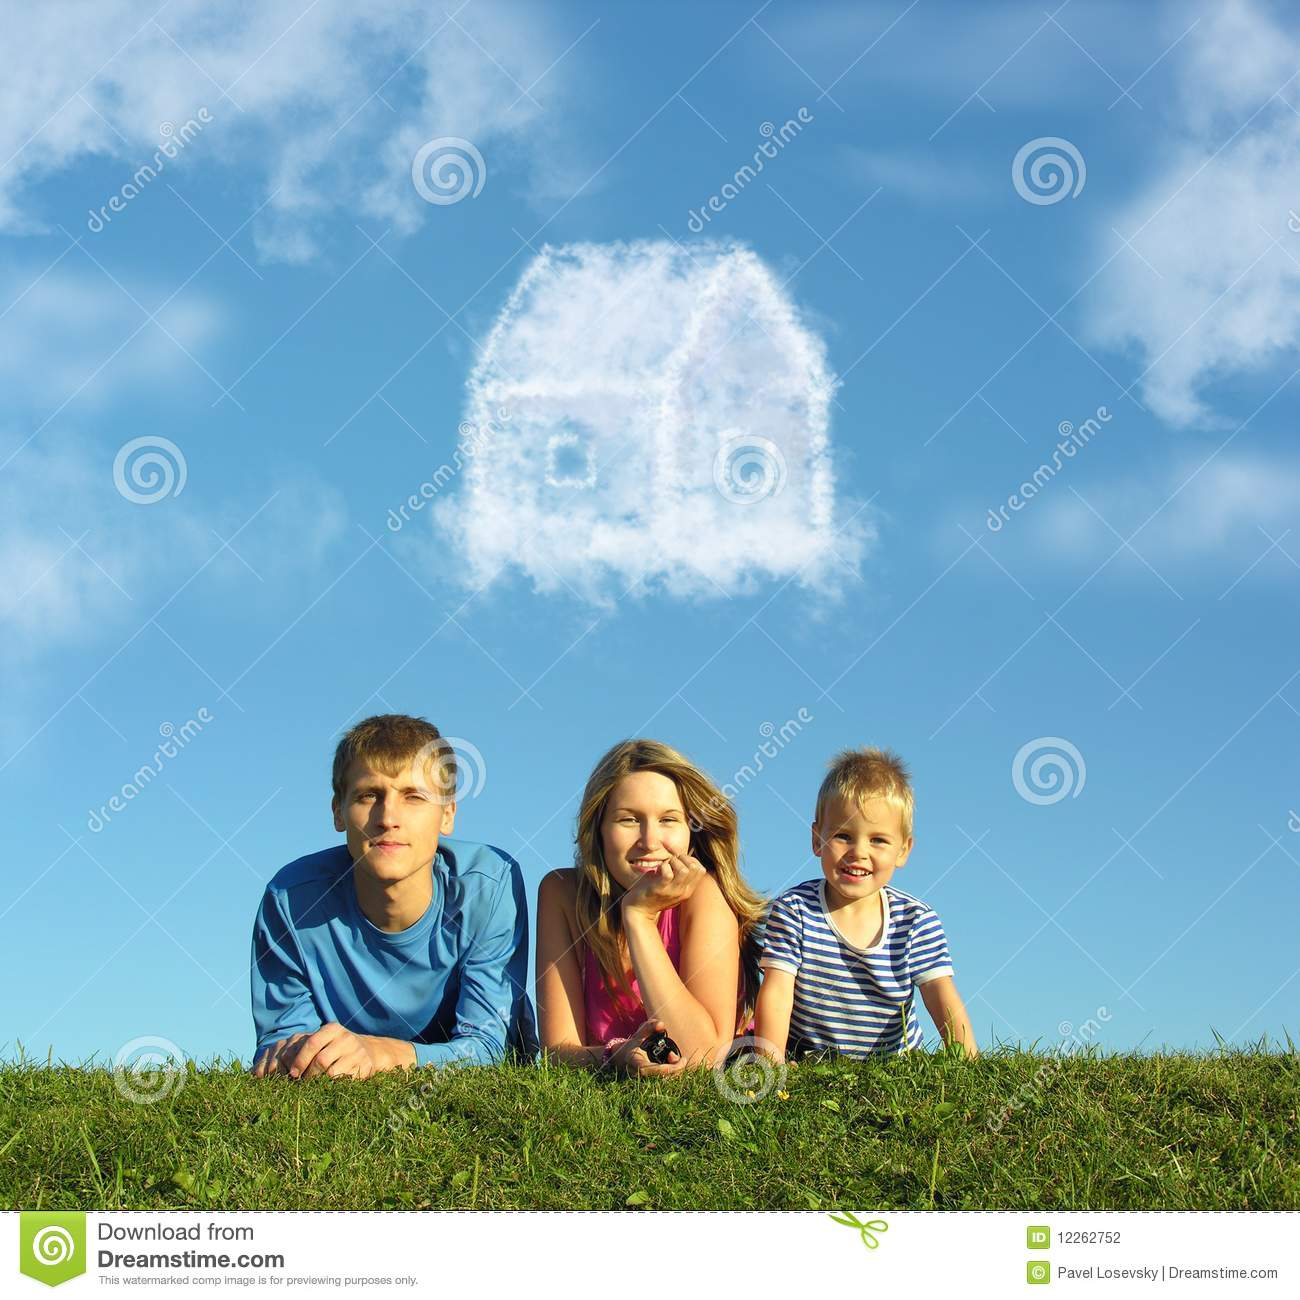 Download Family With Boy On Grass And Dream Cloud House Stock Photo - Image of portrait, building: 12262752